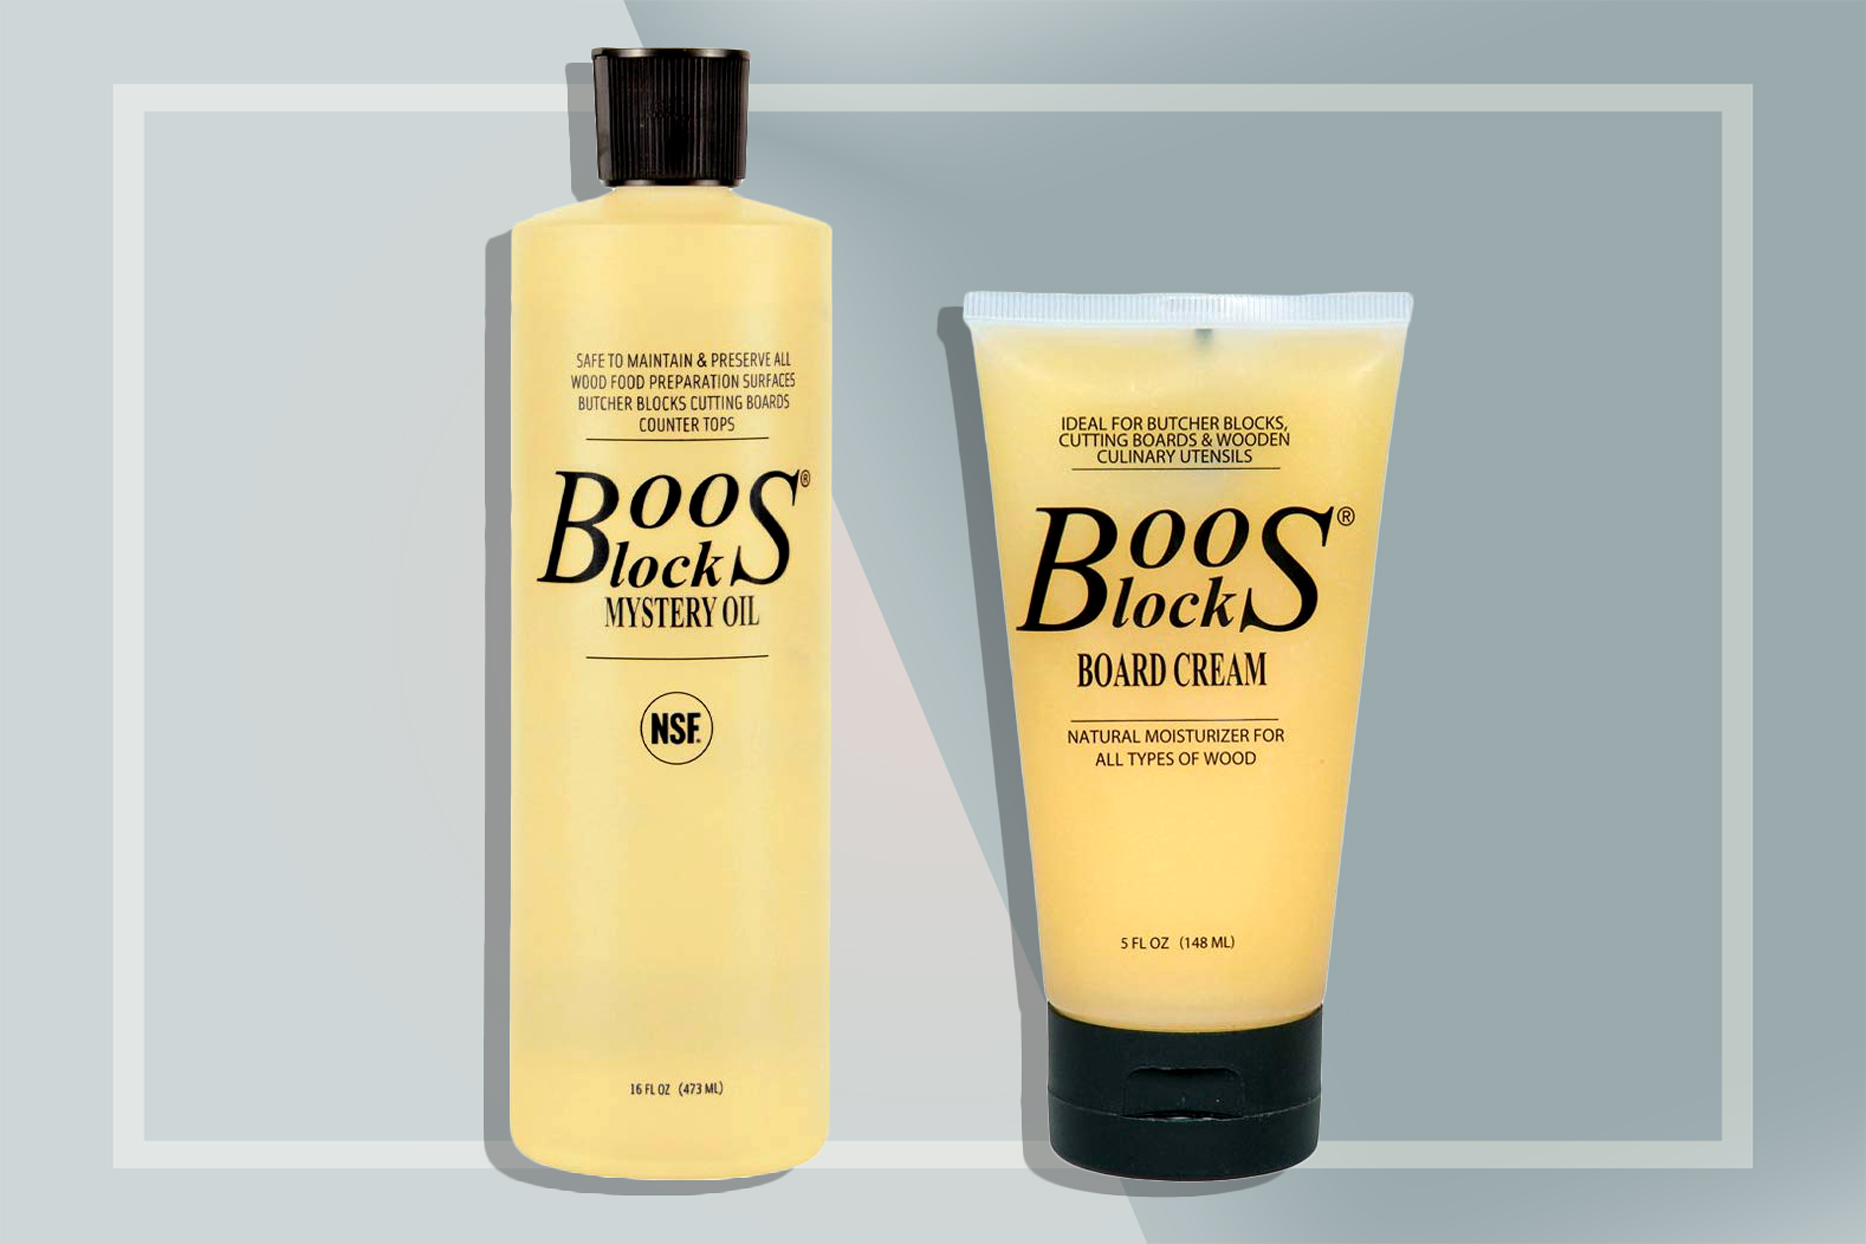 Boos Block Cream Makes Boards Look Brand New